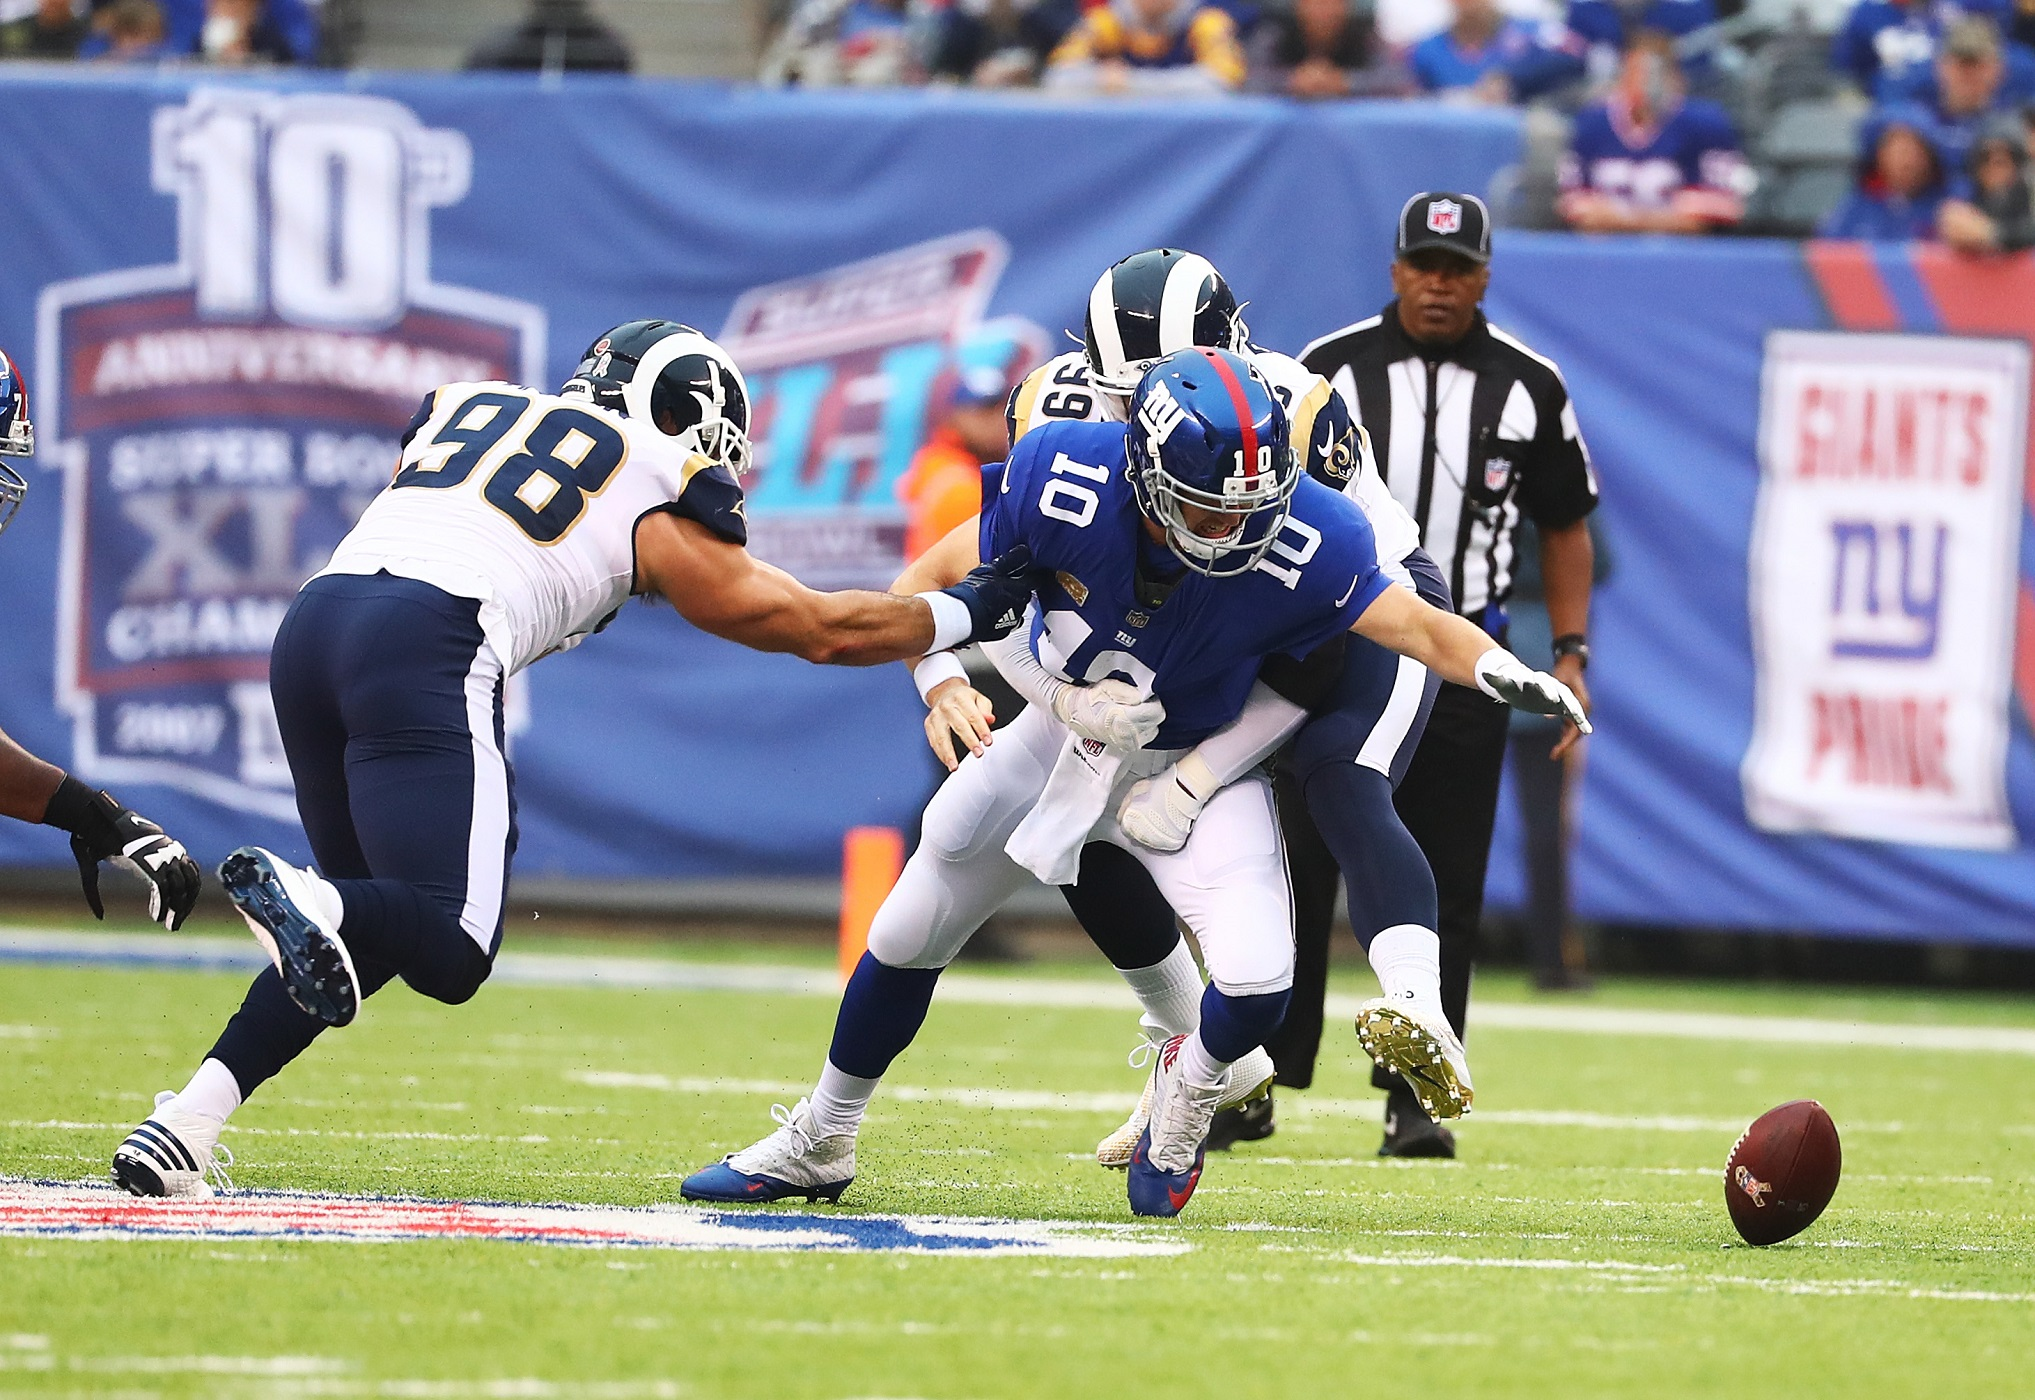 Los Angeles Rams vs New York Giants